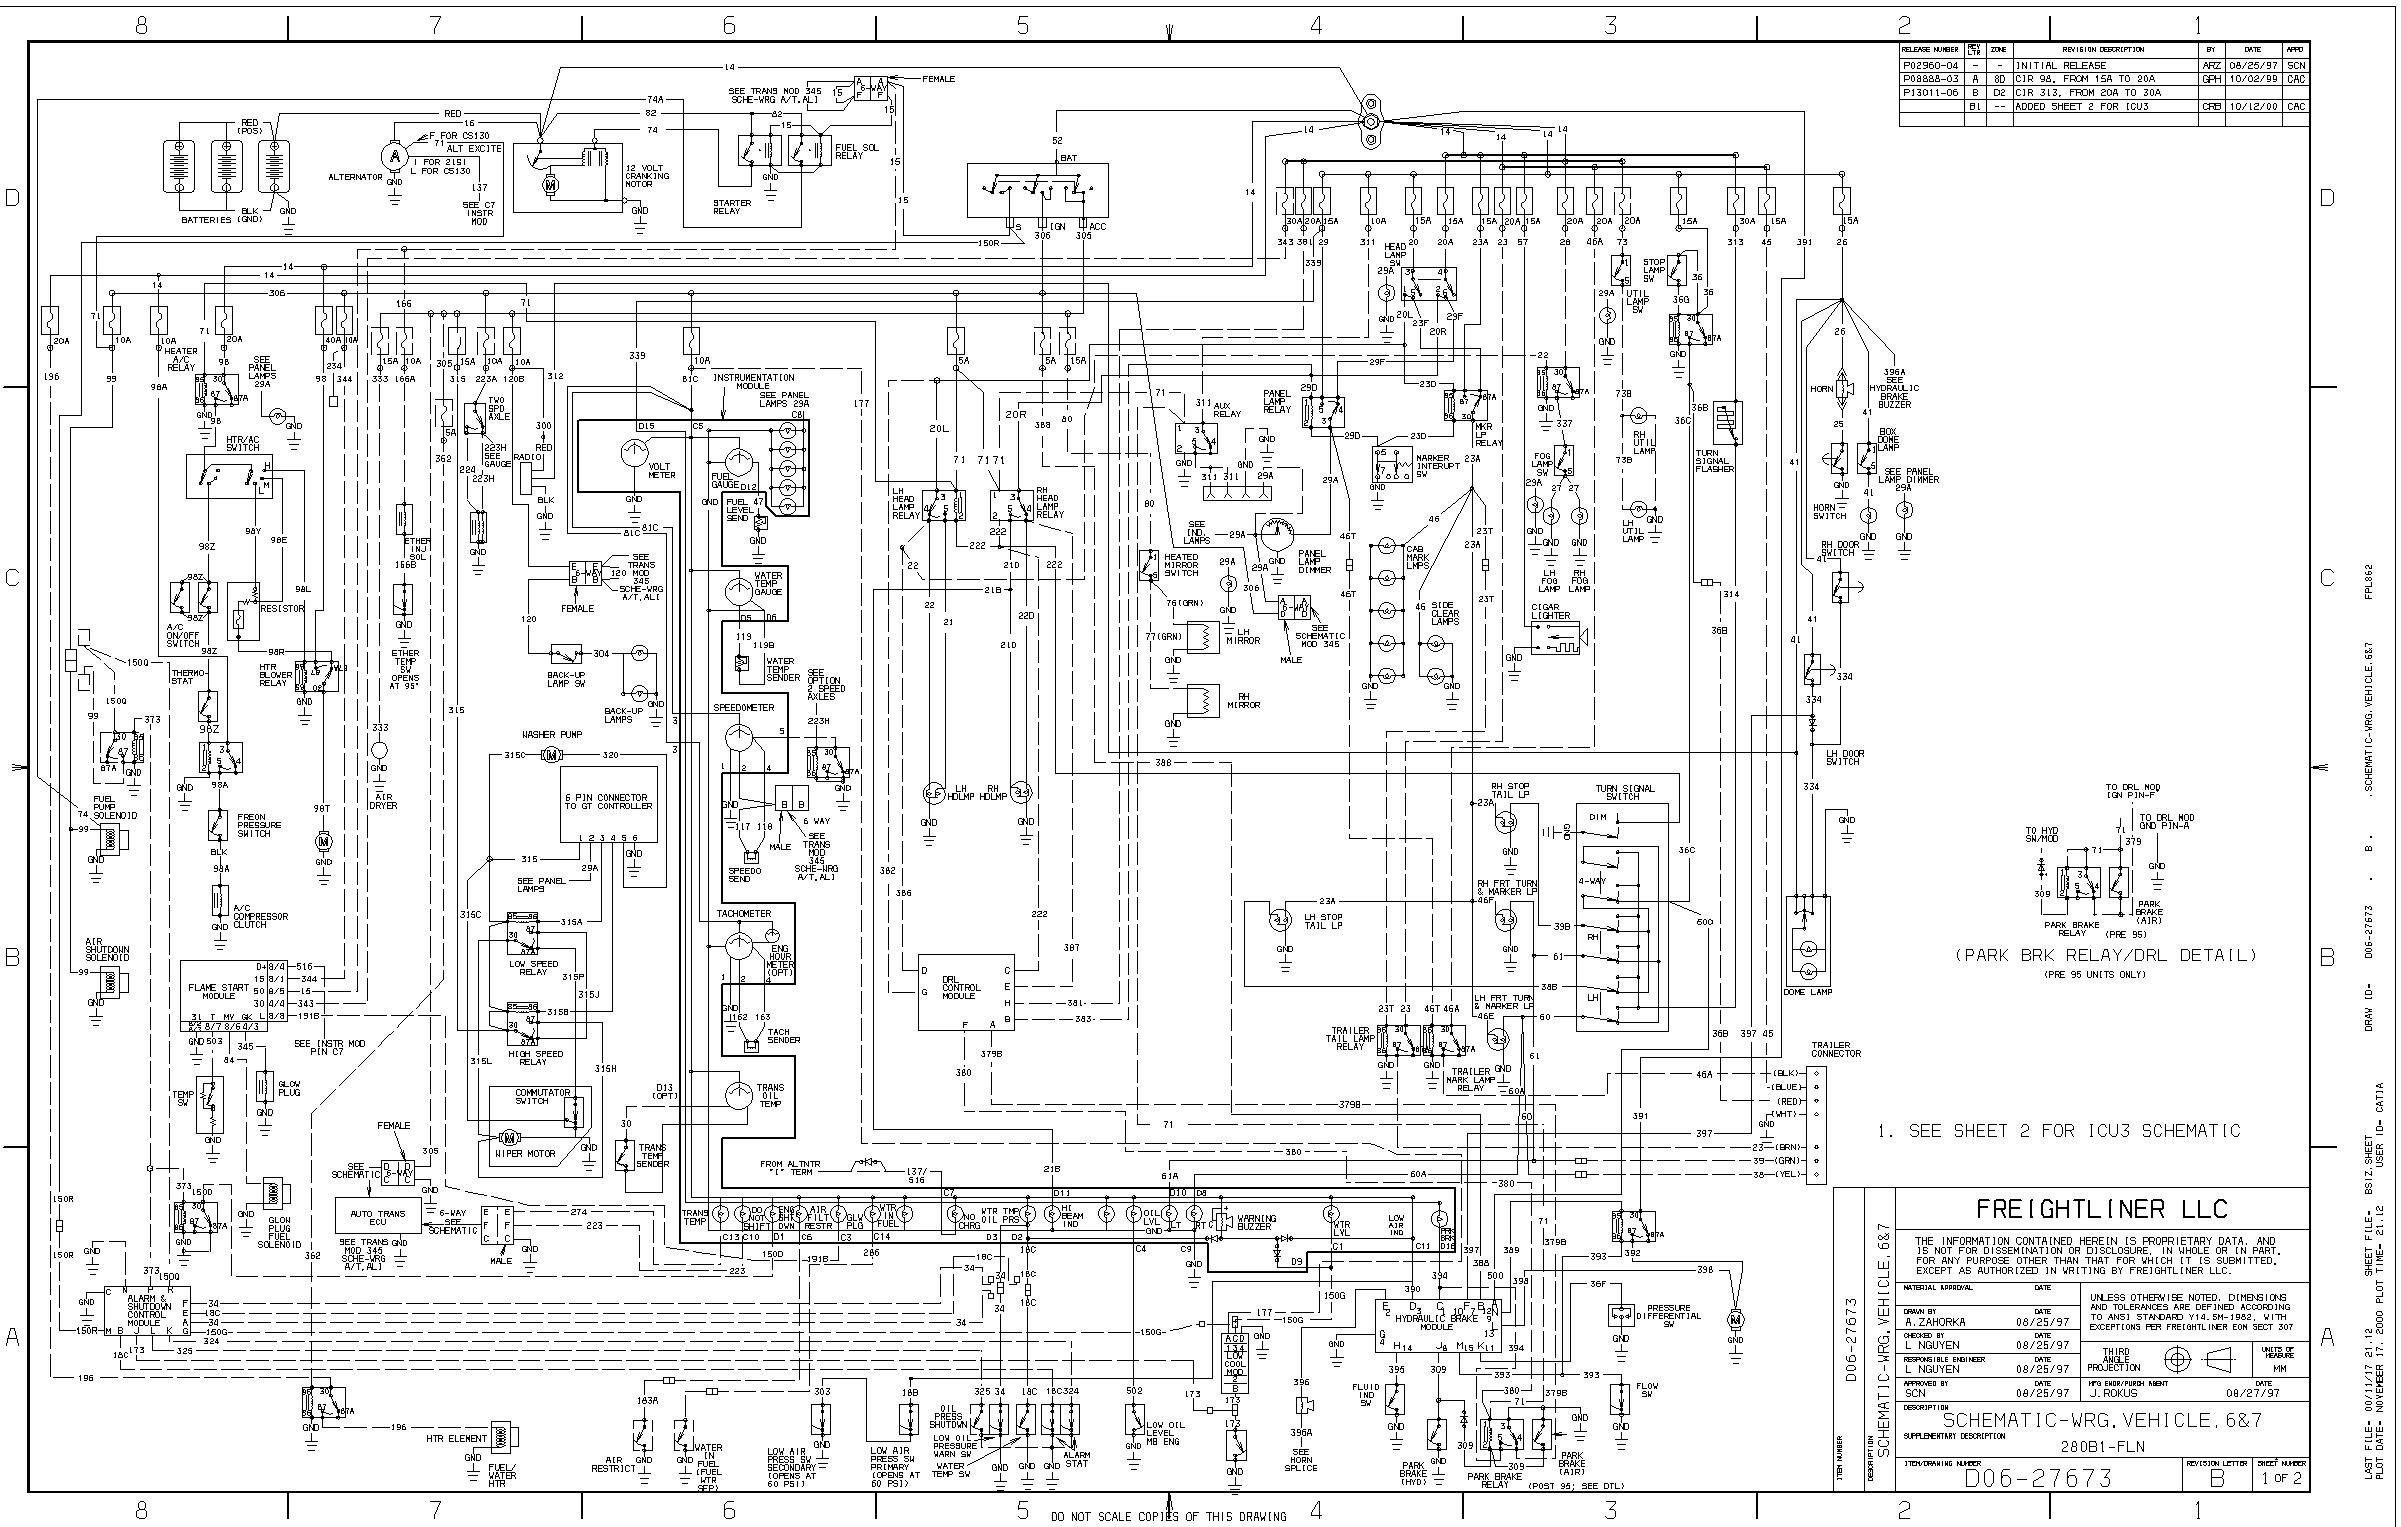 On A 1997 Fl60 Fuse Box Wiring Diagram Yes Freightliner